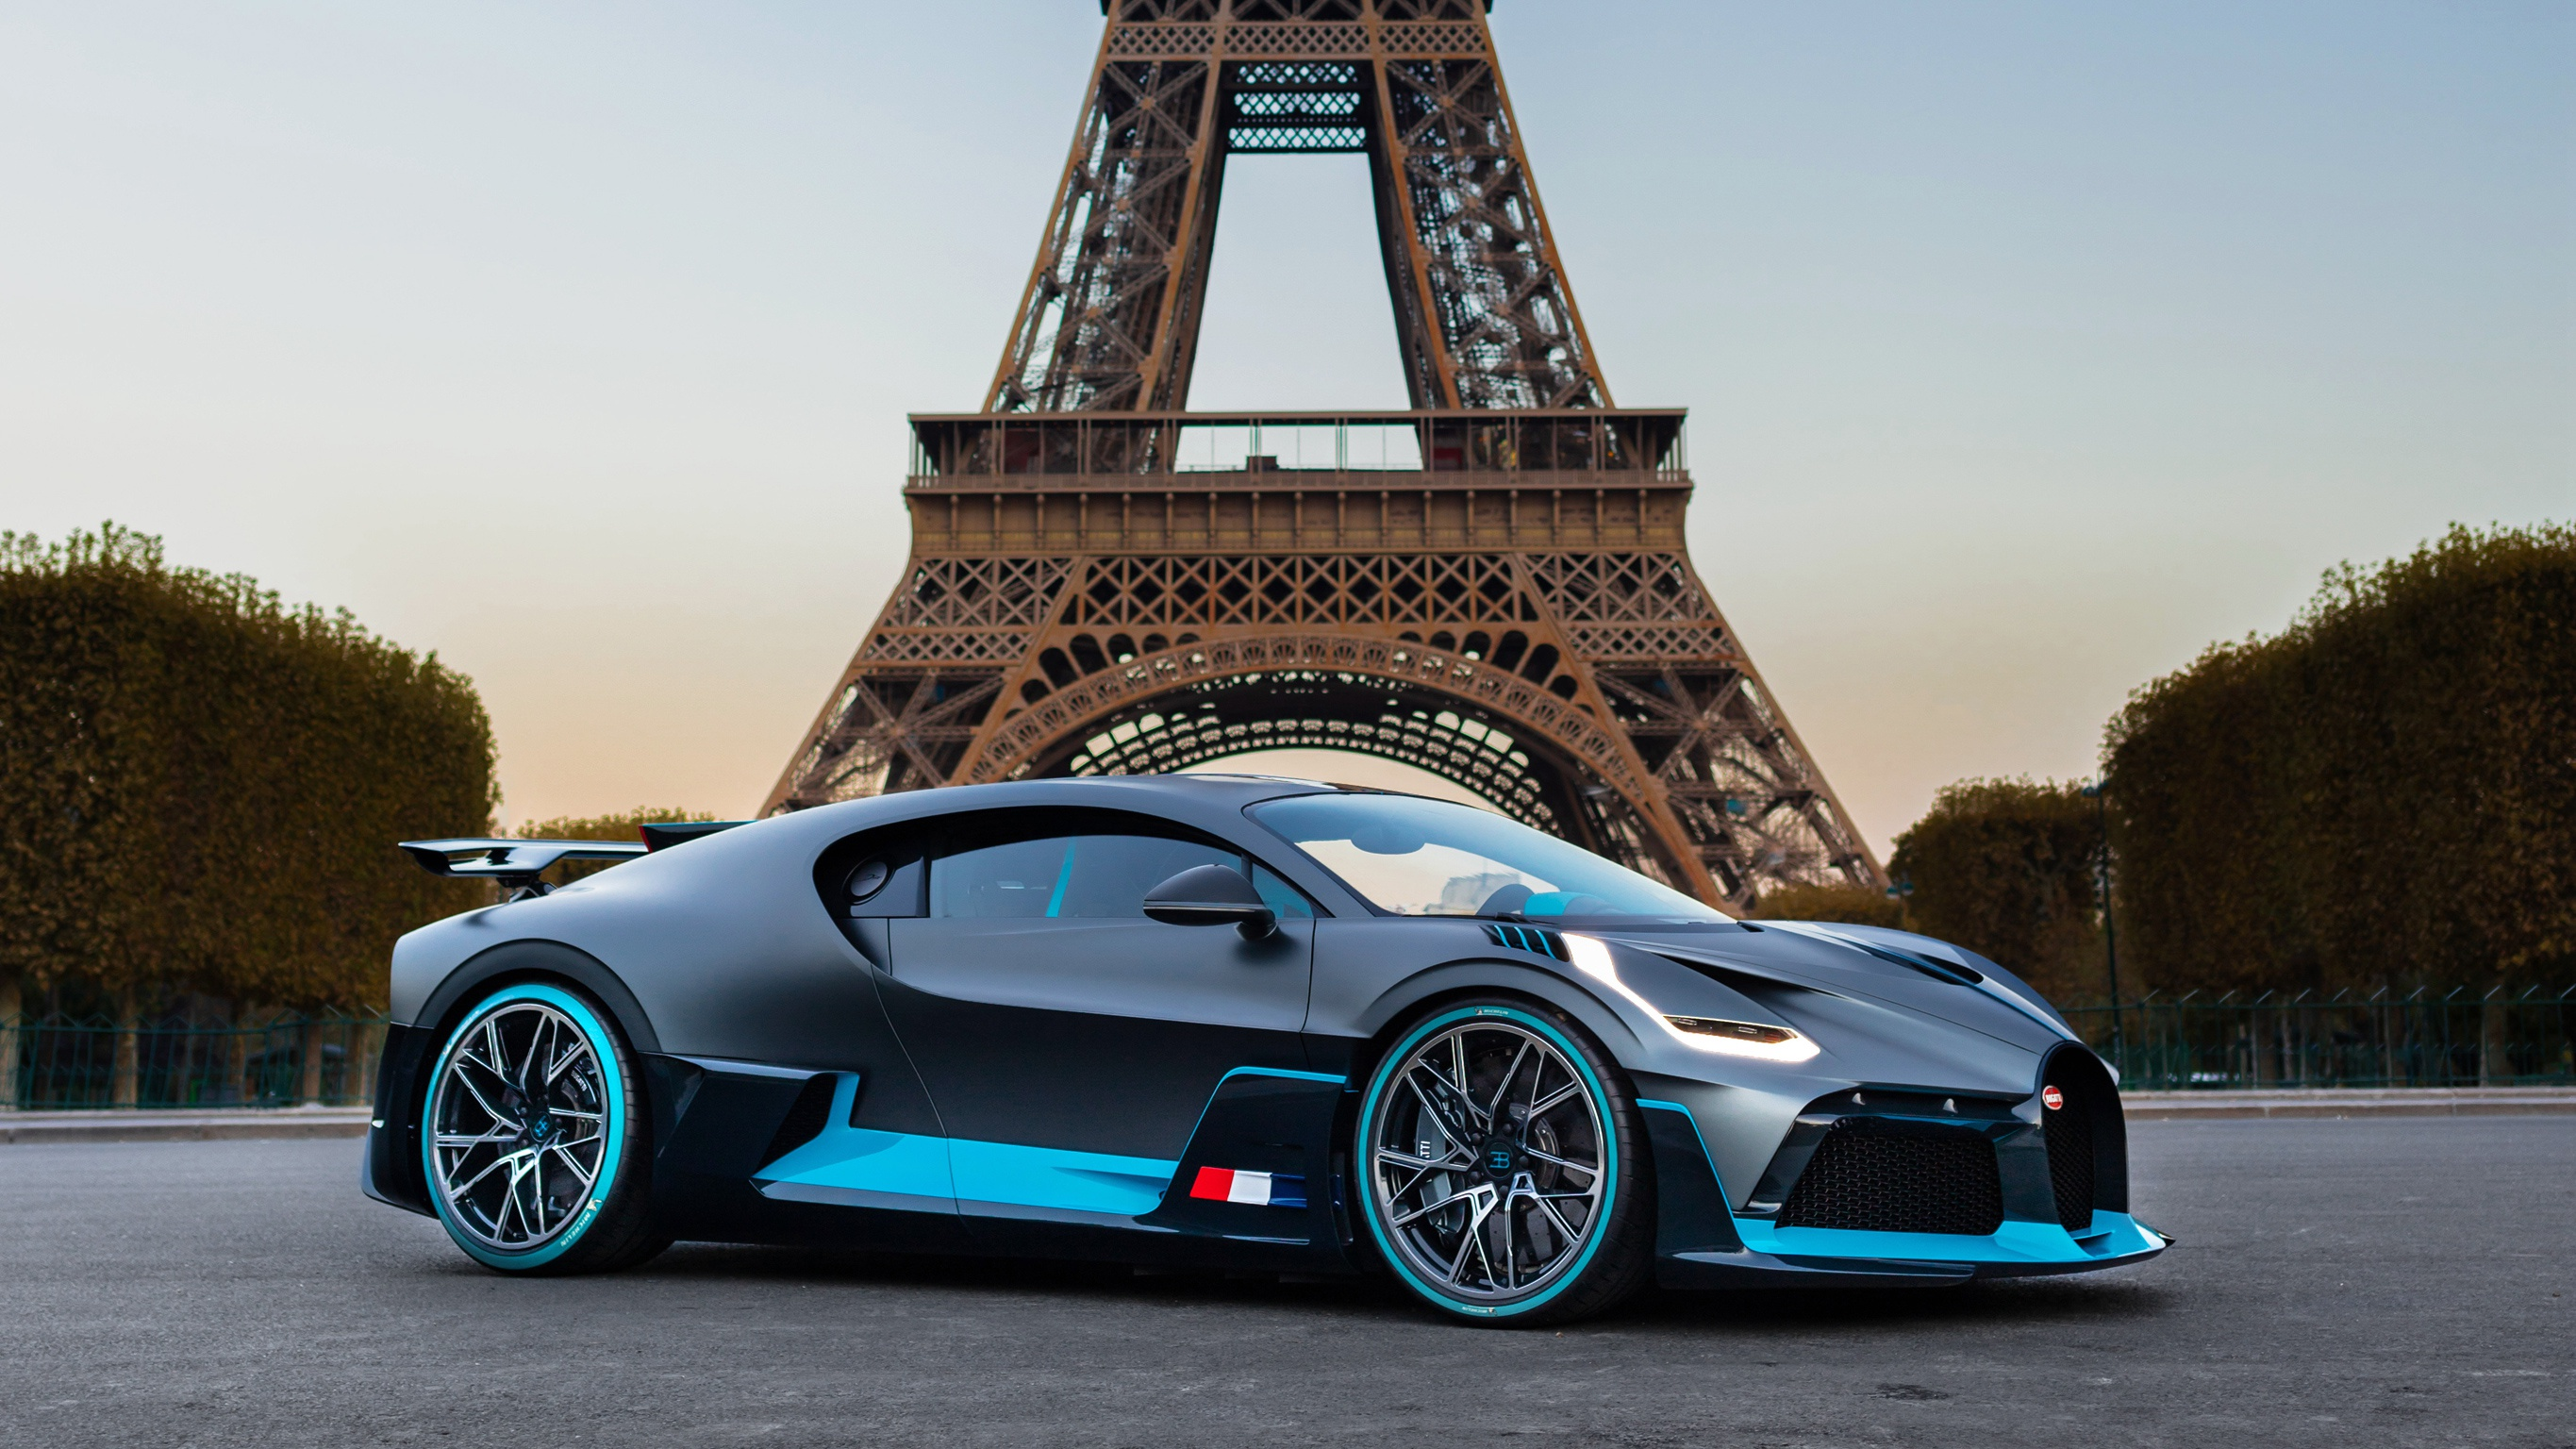 Wallpaper Black Blue Bugatti Divo Car Sportcar Desktop Picture Amp Hd Photo